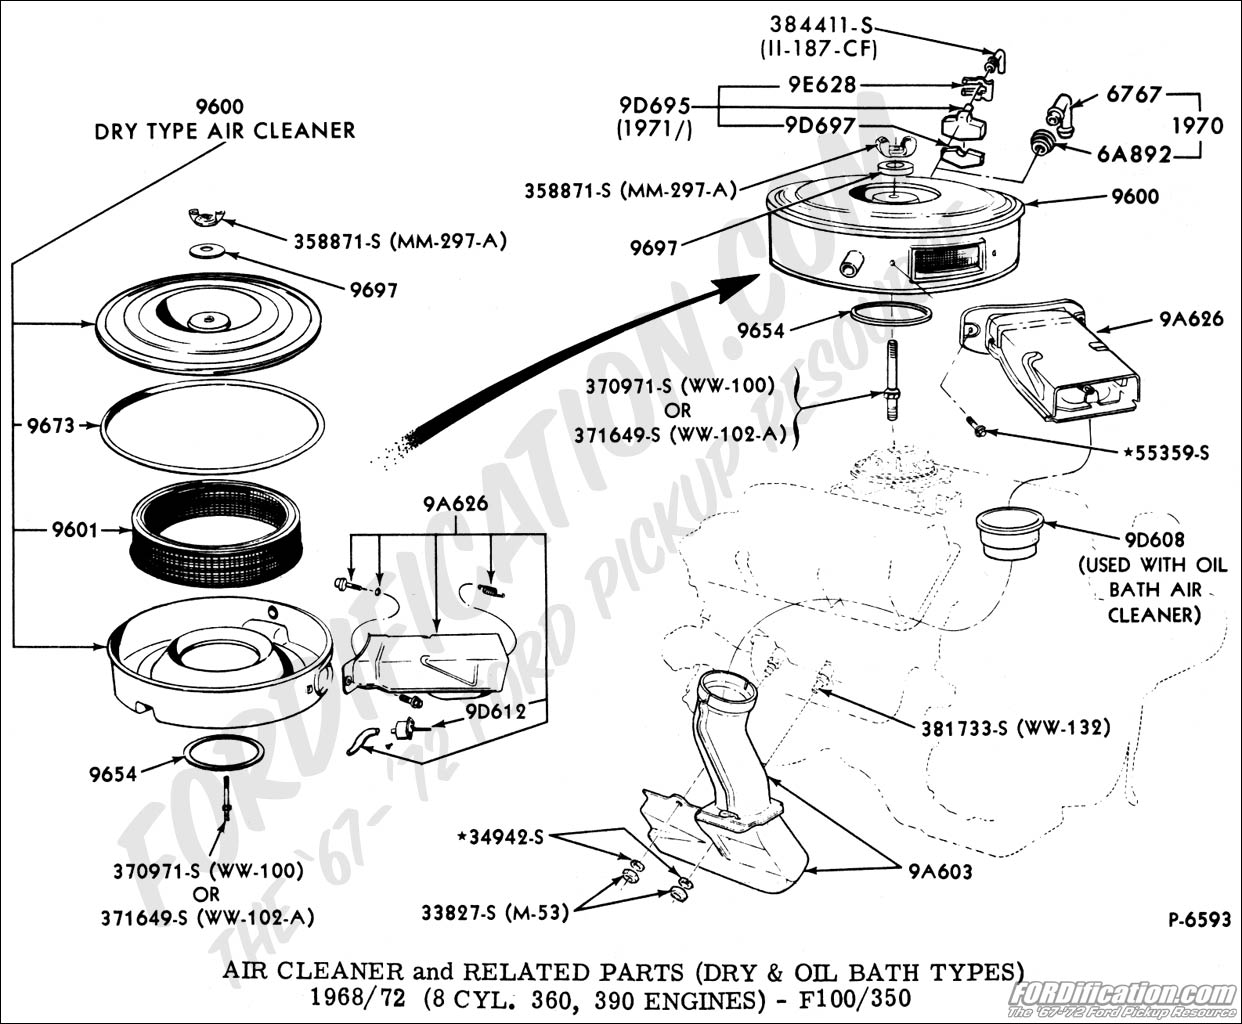 1974 Ford F100 460 Engine Diagram Wiring Library 1979 1977 F 150 Vacuum Free Image Engines Trucks